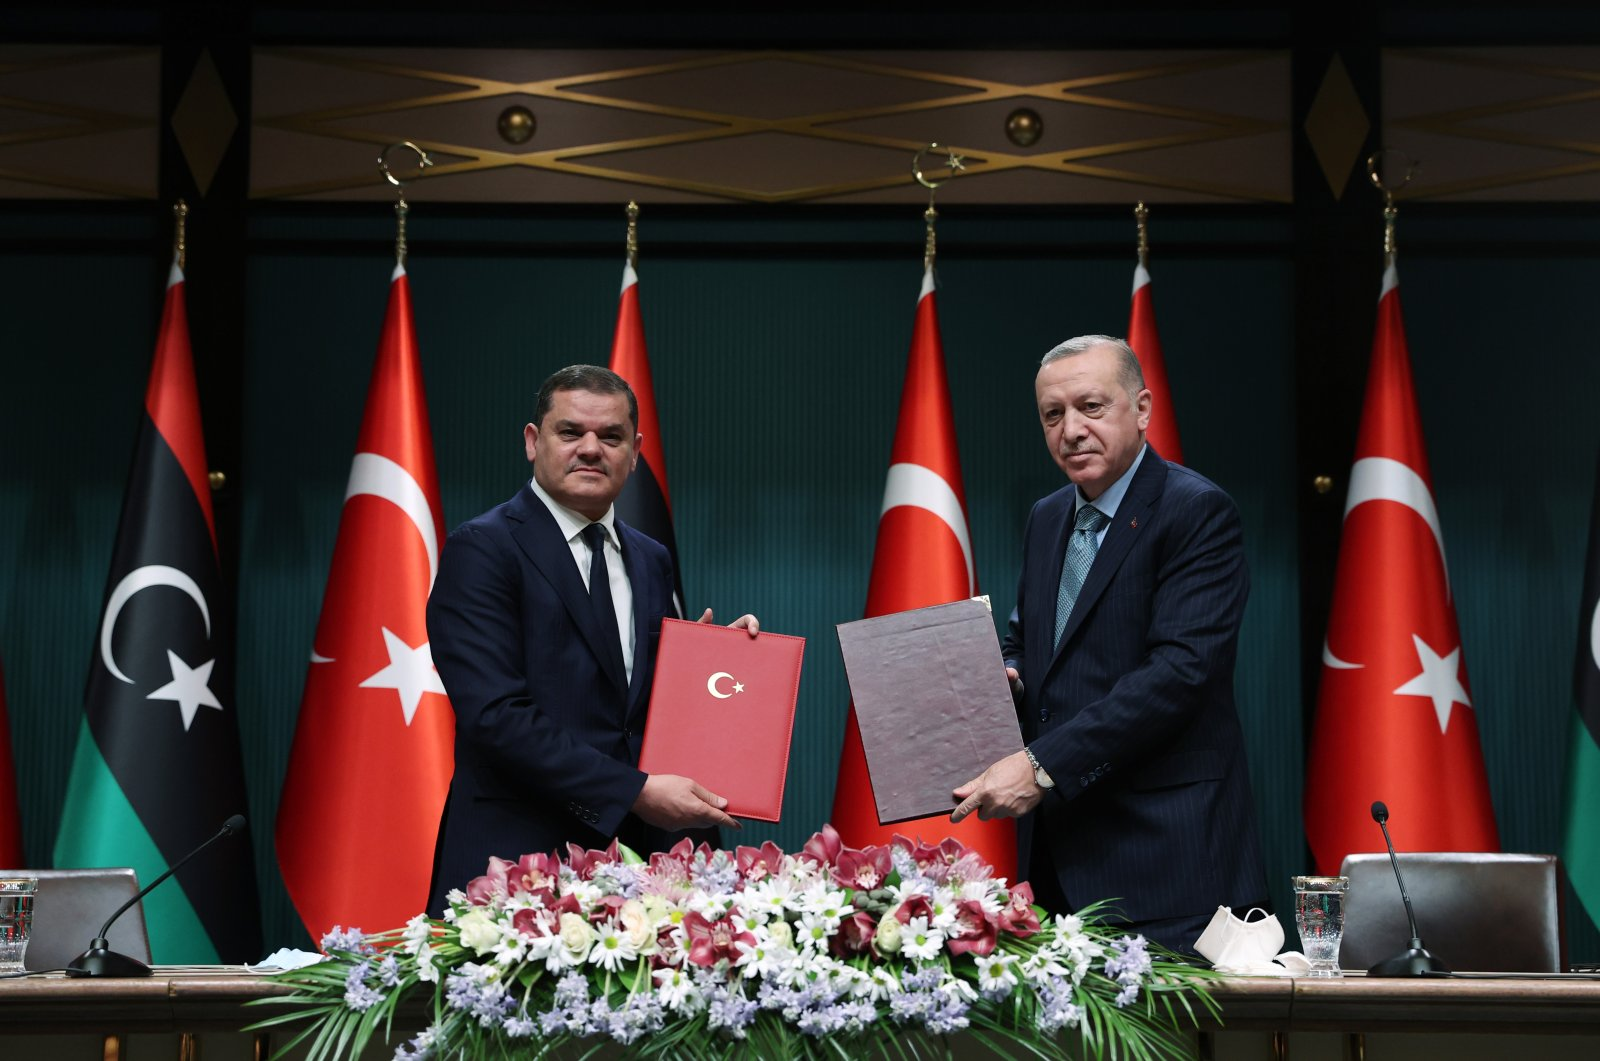 Libya's Prime Minister Abdul Hamid Mohammed Dbeibah (L) and President Recep Tayyip Erdoğan pose for a photo during a signing ceremony after their meeting in the capital Ankara, Turkey, April 12, 2021. (AA Photo)